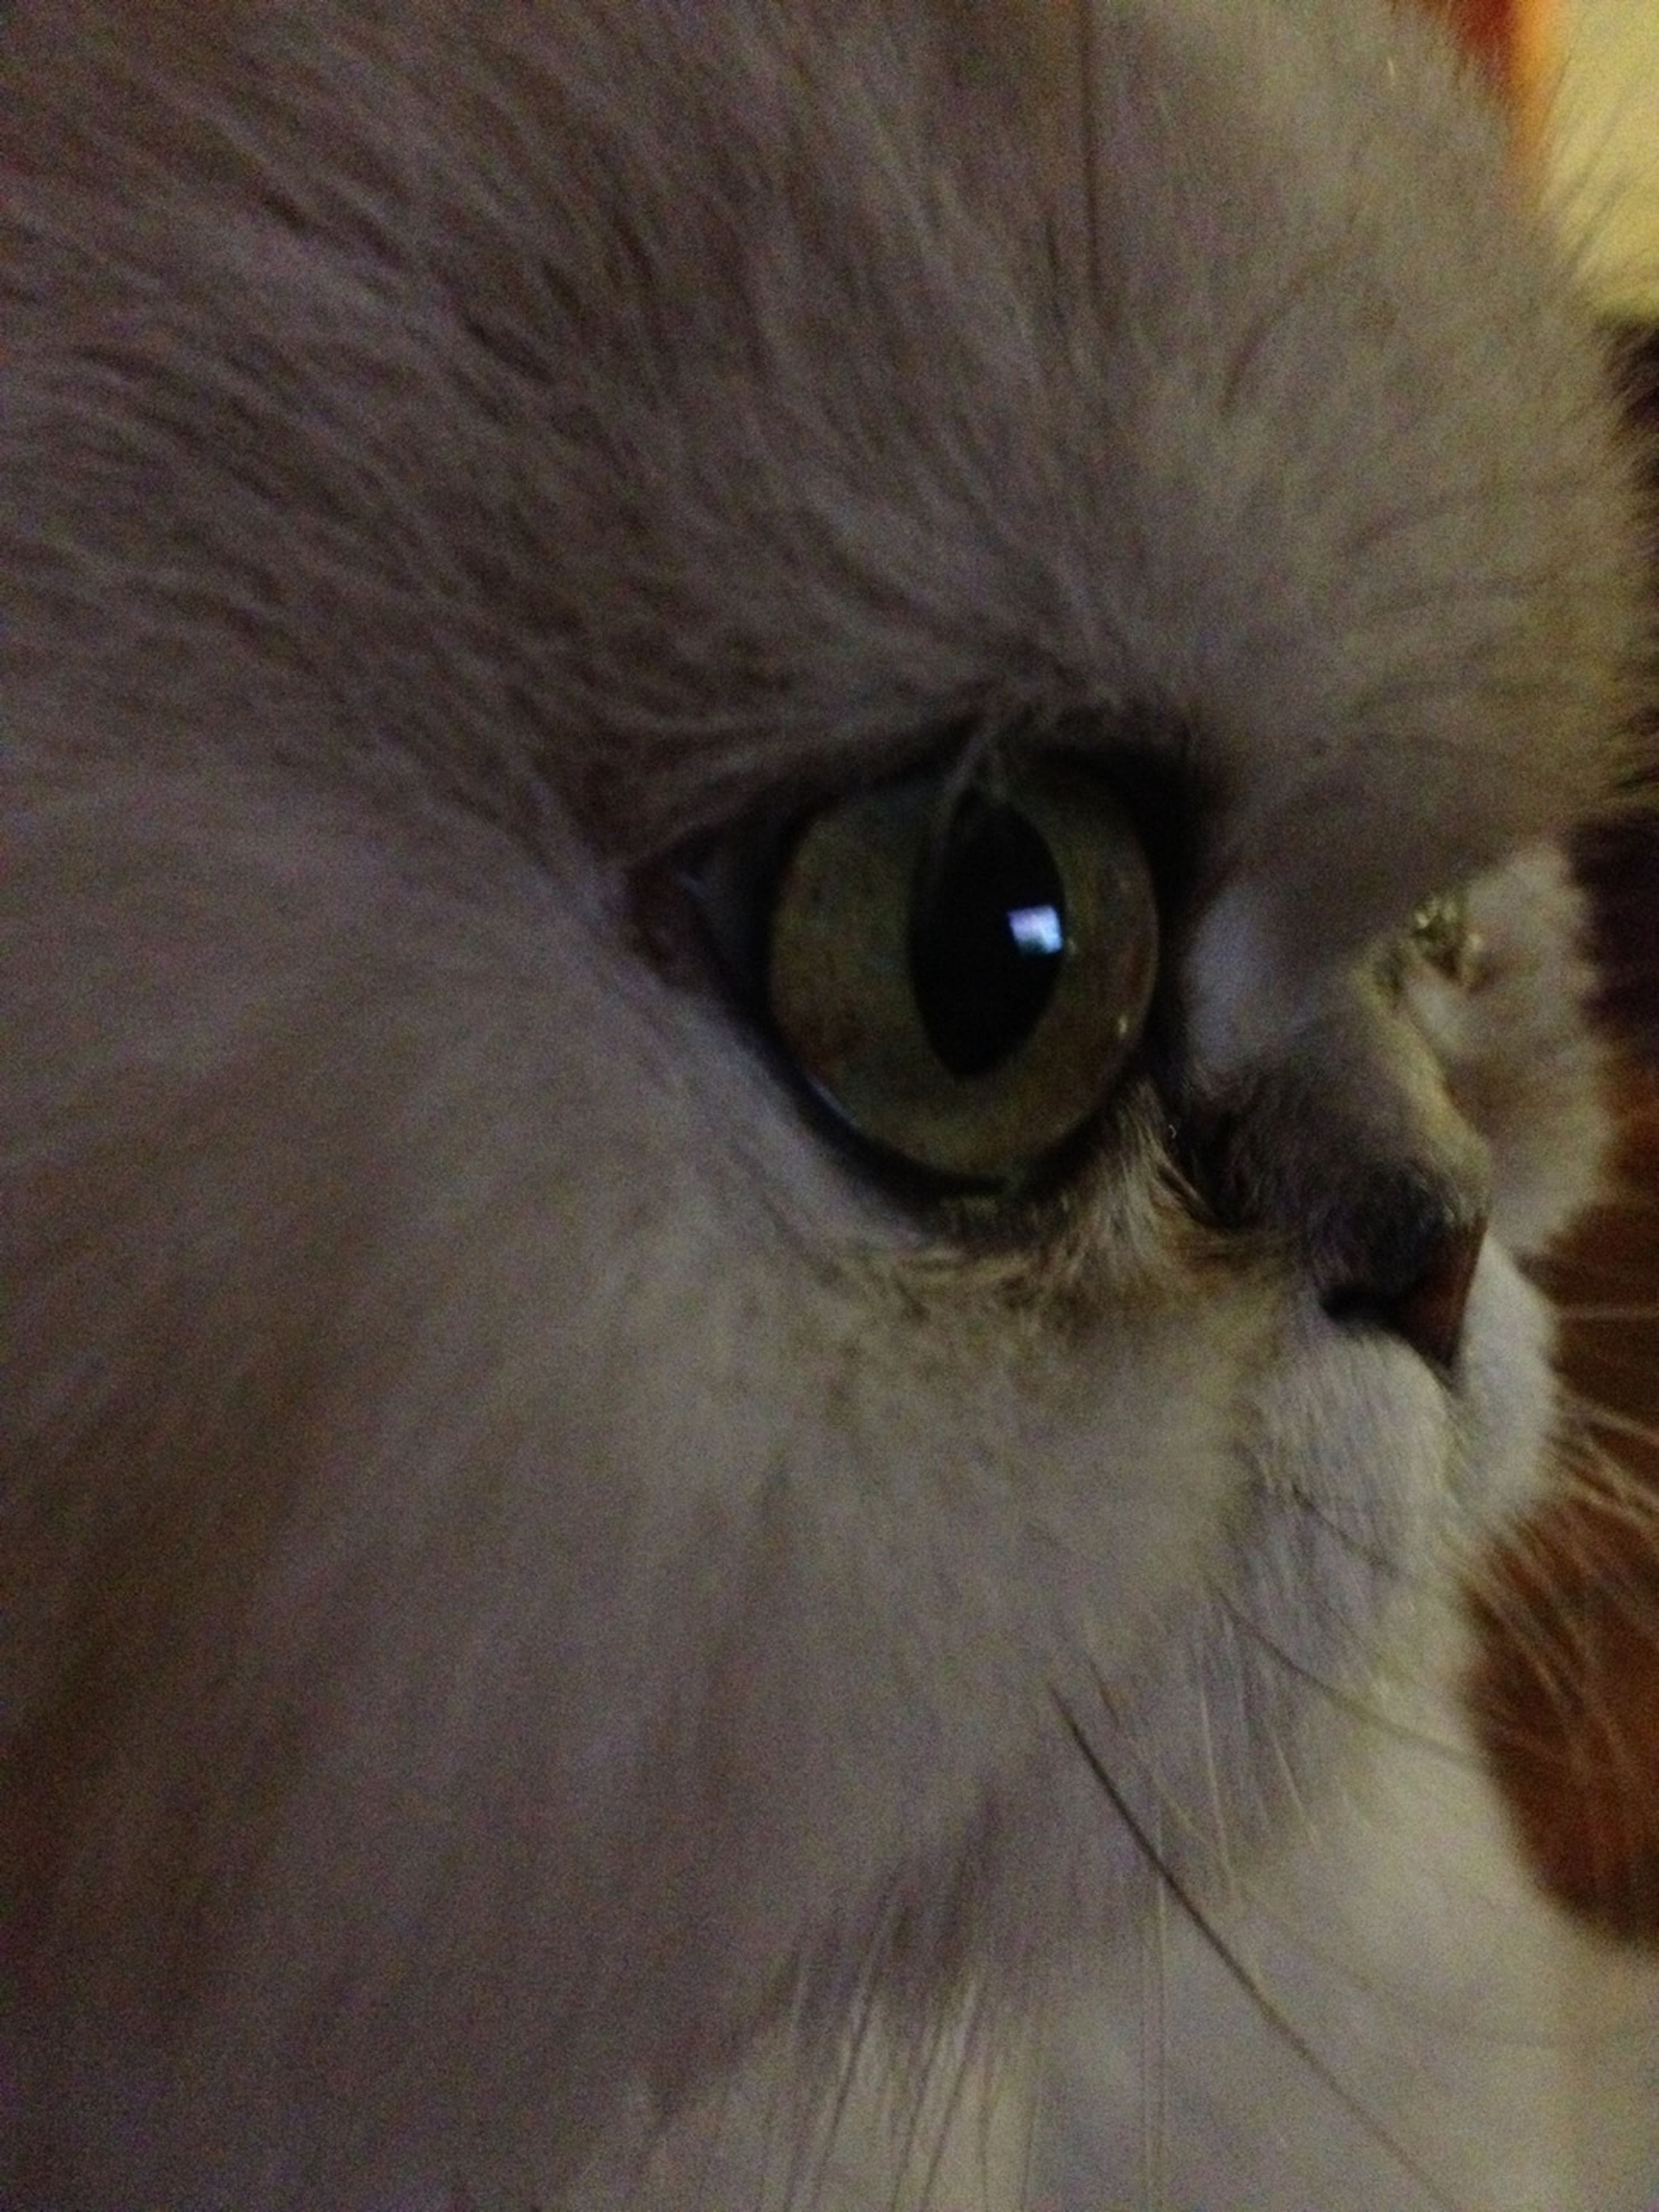 one animal, animal themes, pets, domestic animals, domestic cat, cat, animal head, animal eye, mammal, feline, animal body part, close-up, whisker, indoors, animal hair, staring, portrait, looking at camera, zoology